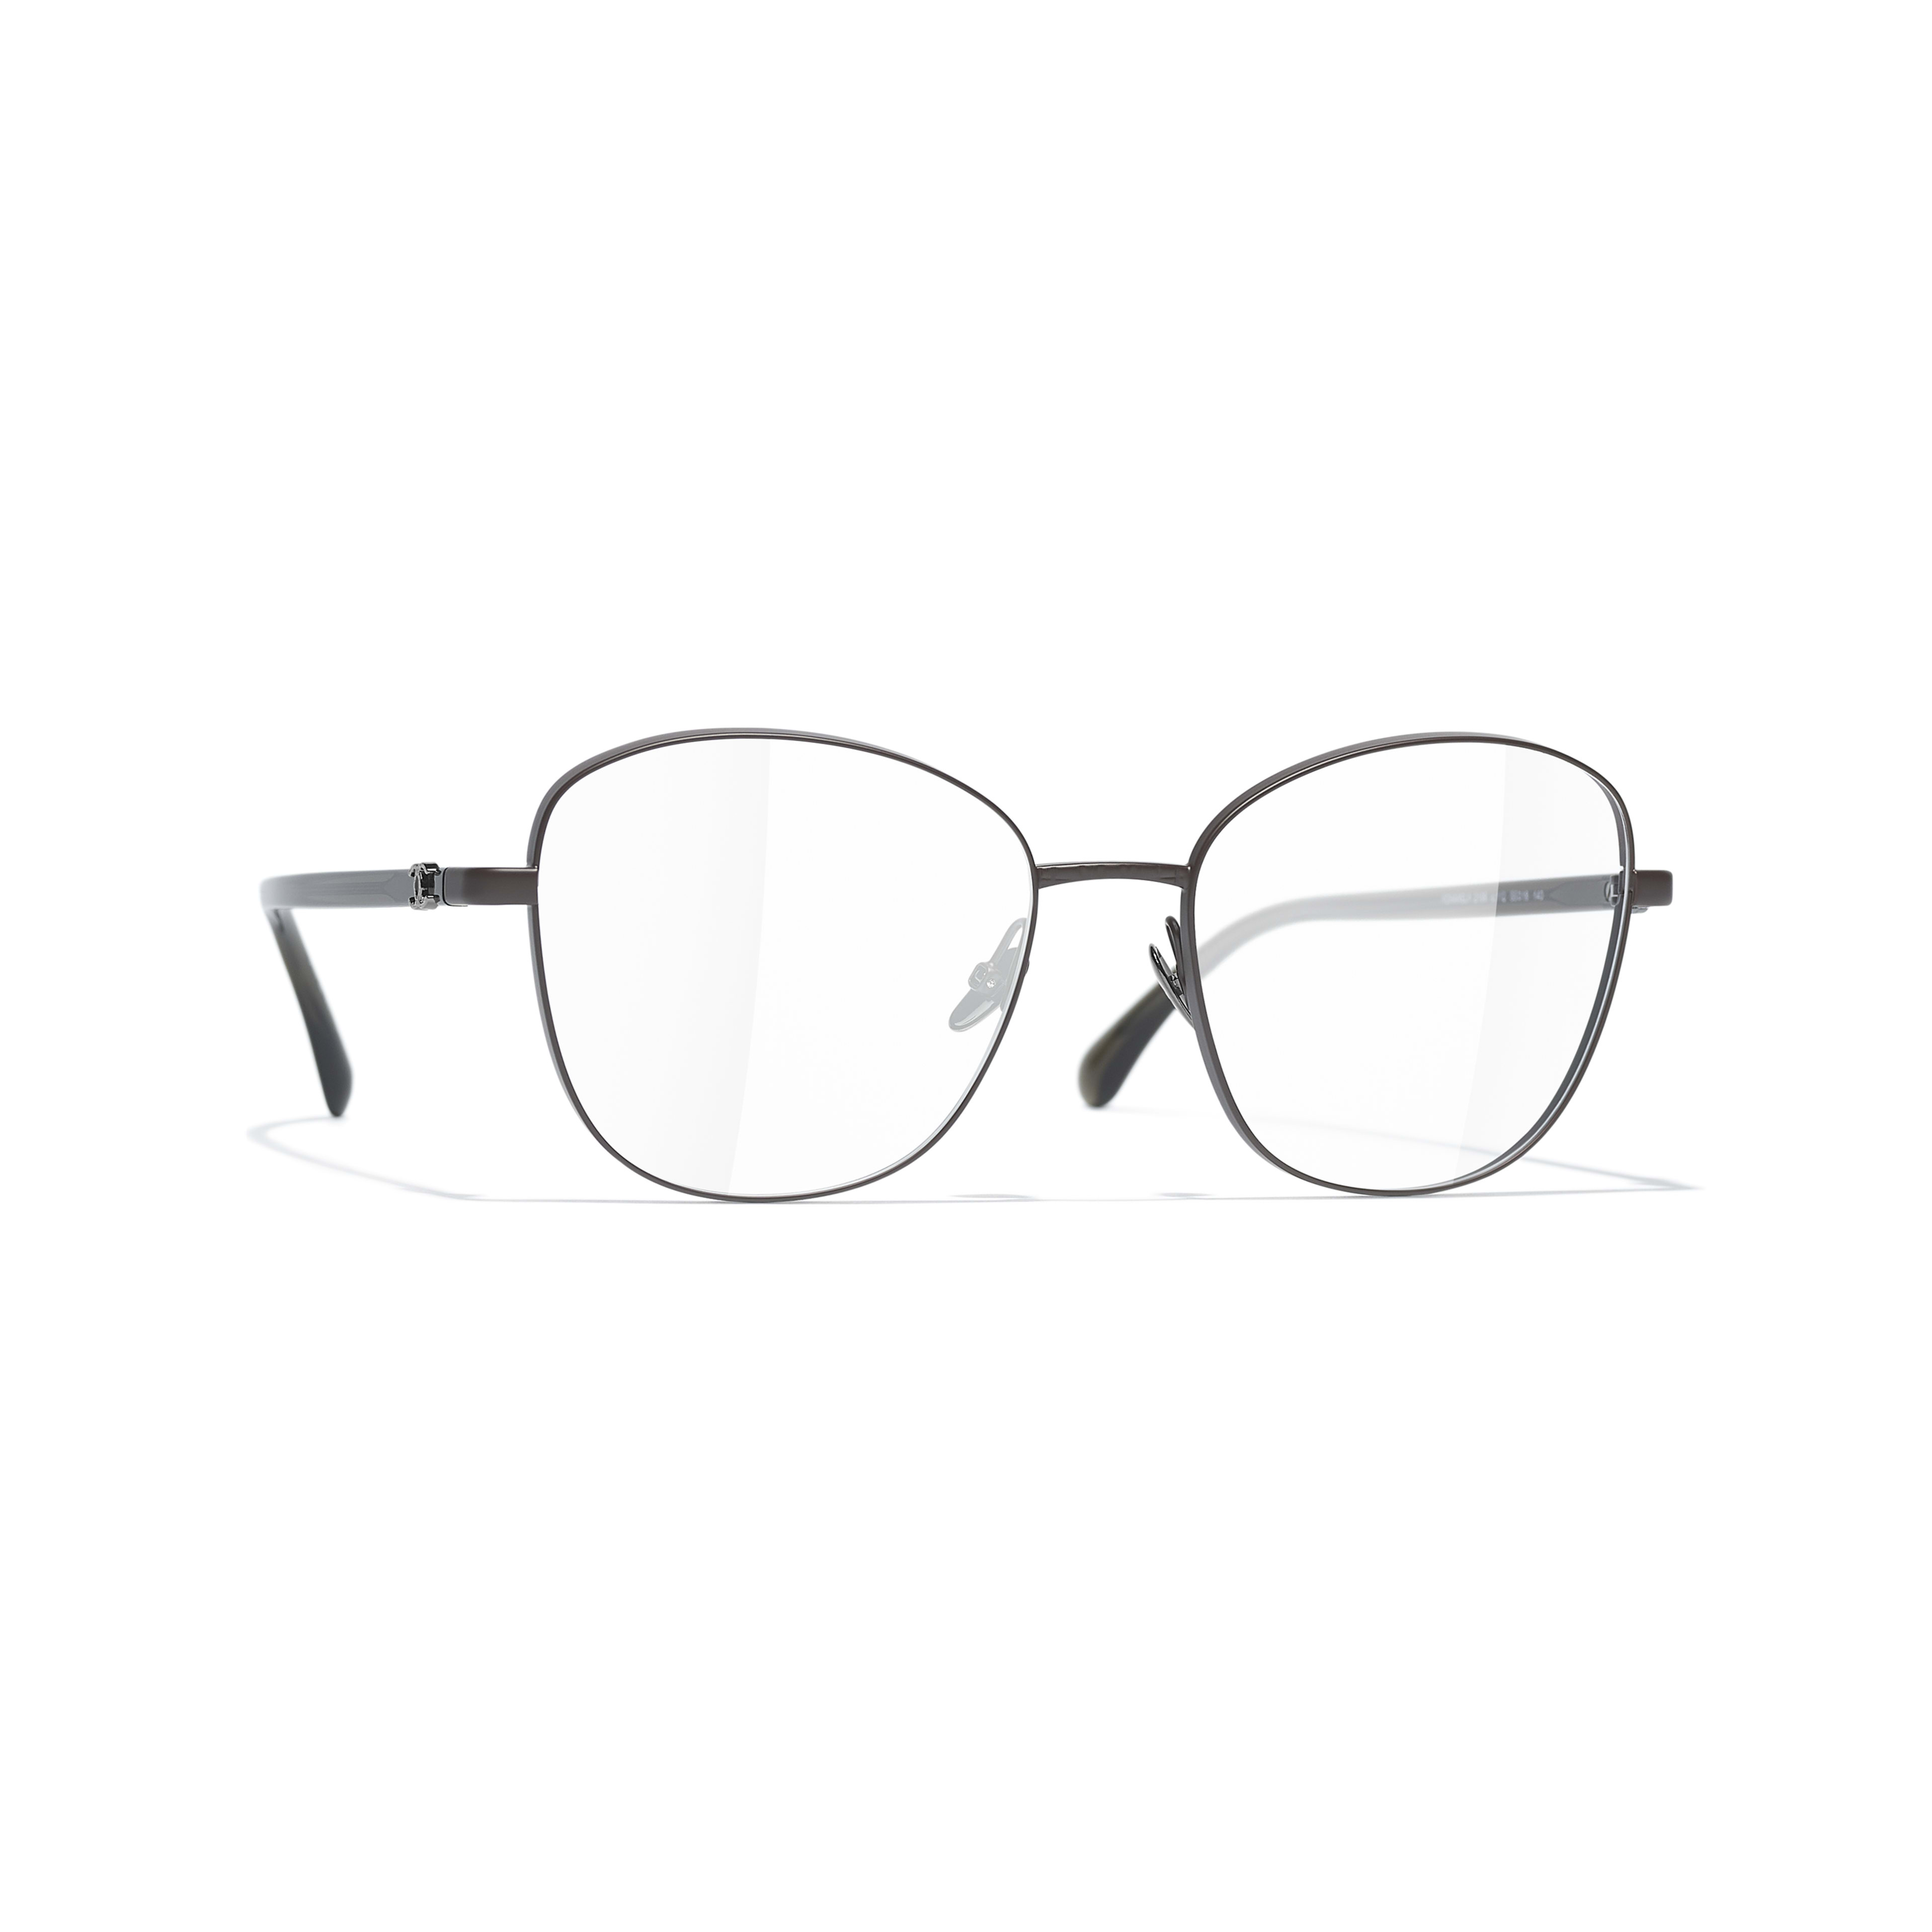 Pantos Eyeglasses - Brown - Acetate & Metal - CHANEL - Default view - see standard sized version